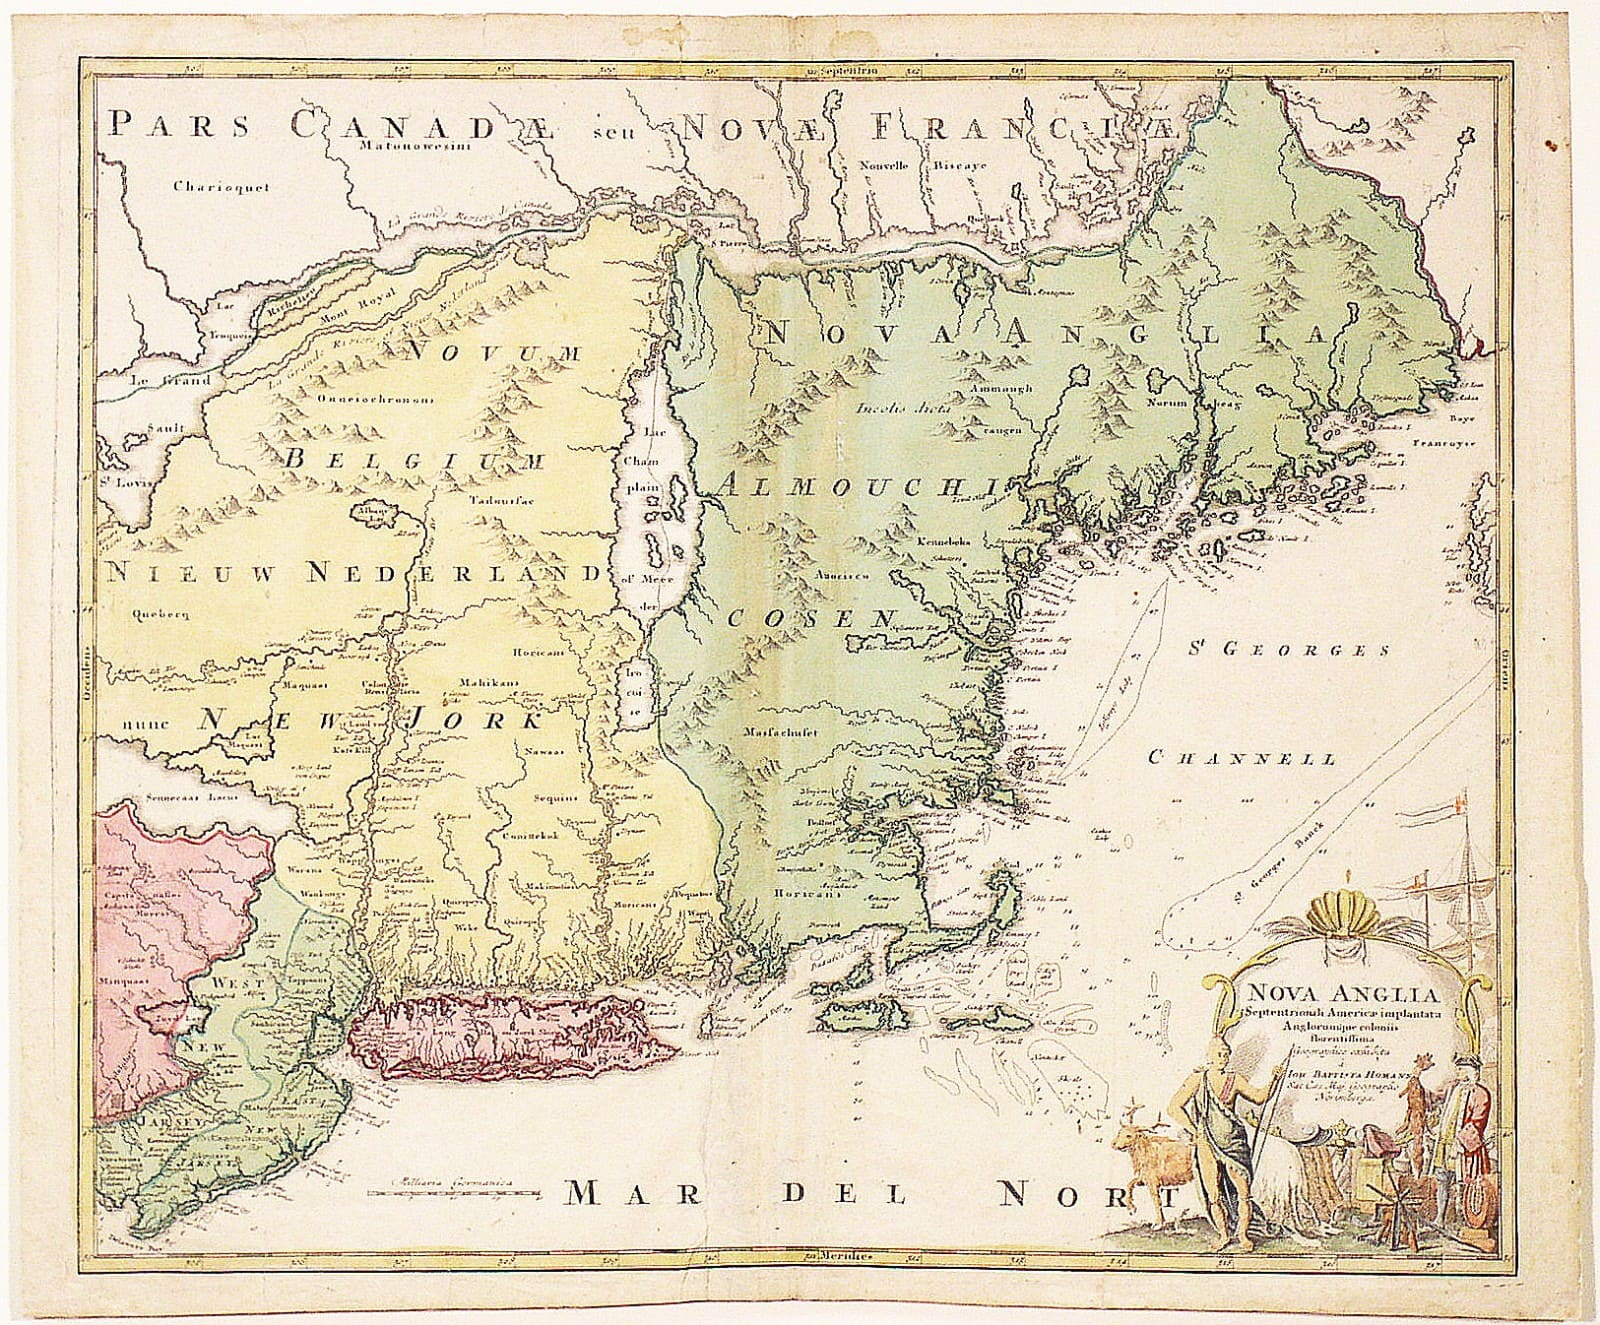 A Most Intriguing And Decorative Map Of New York And New England